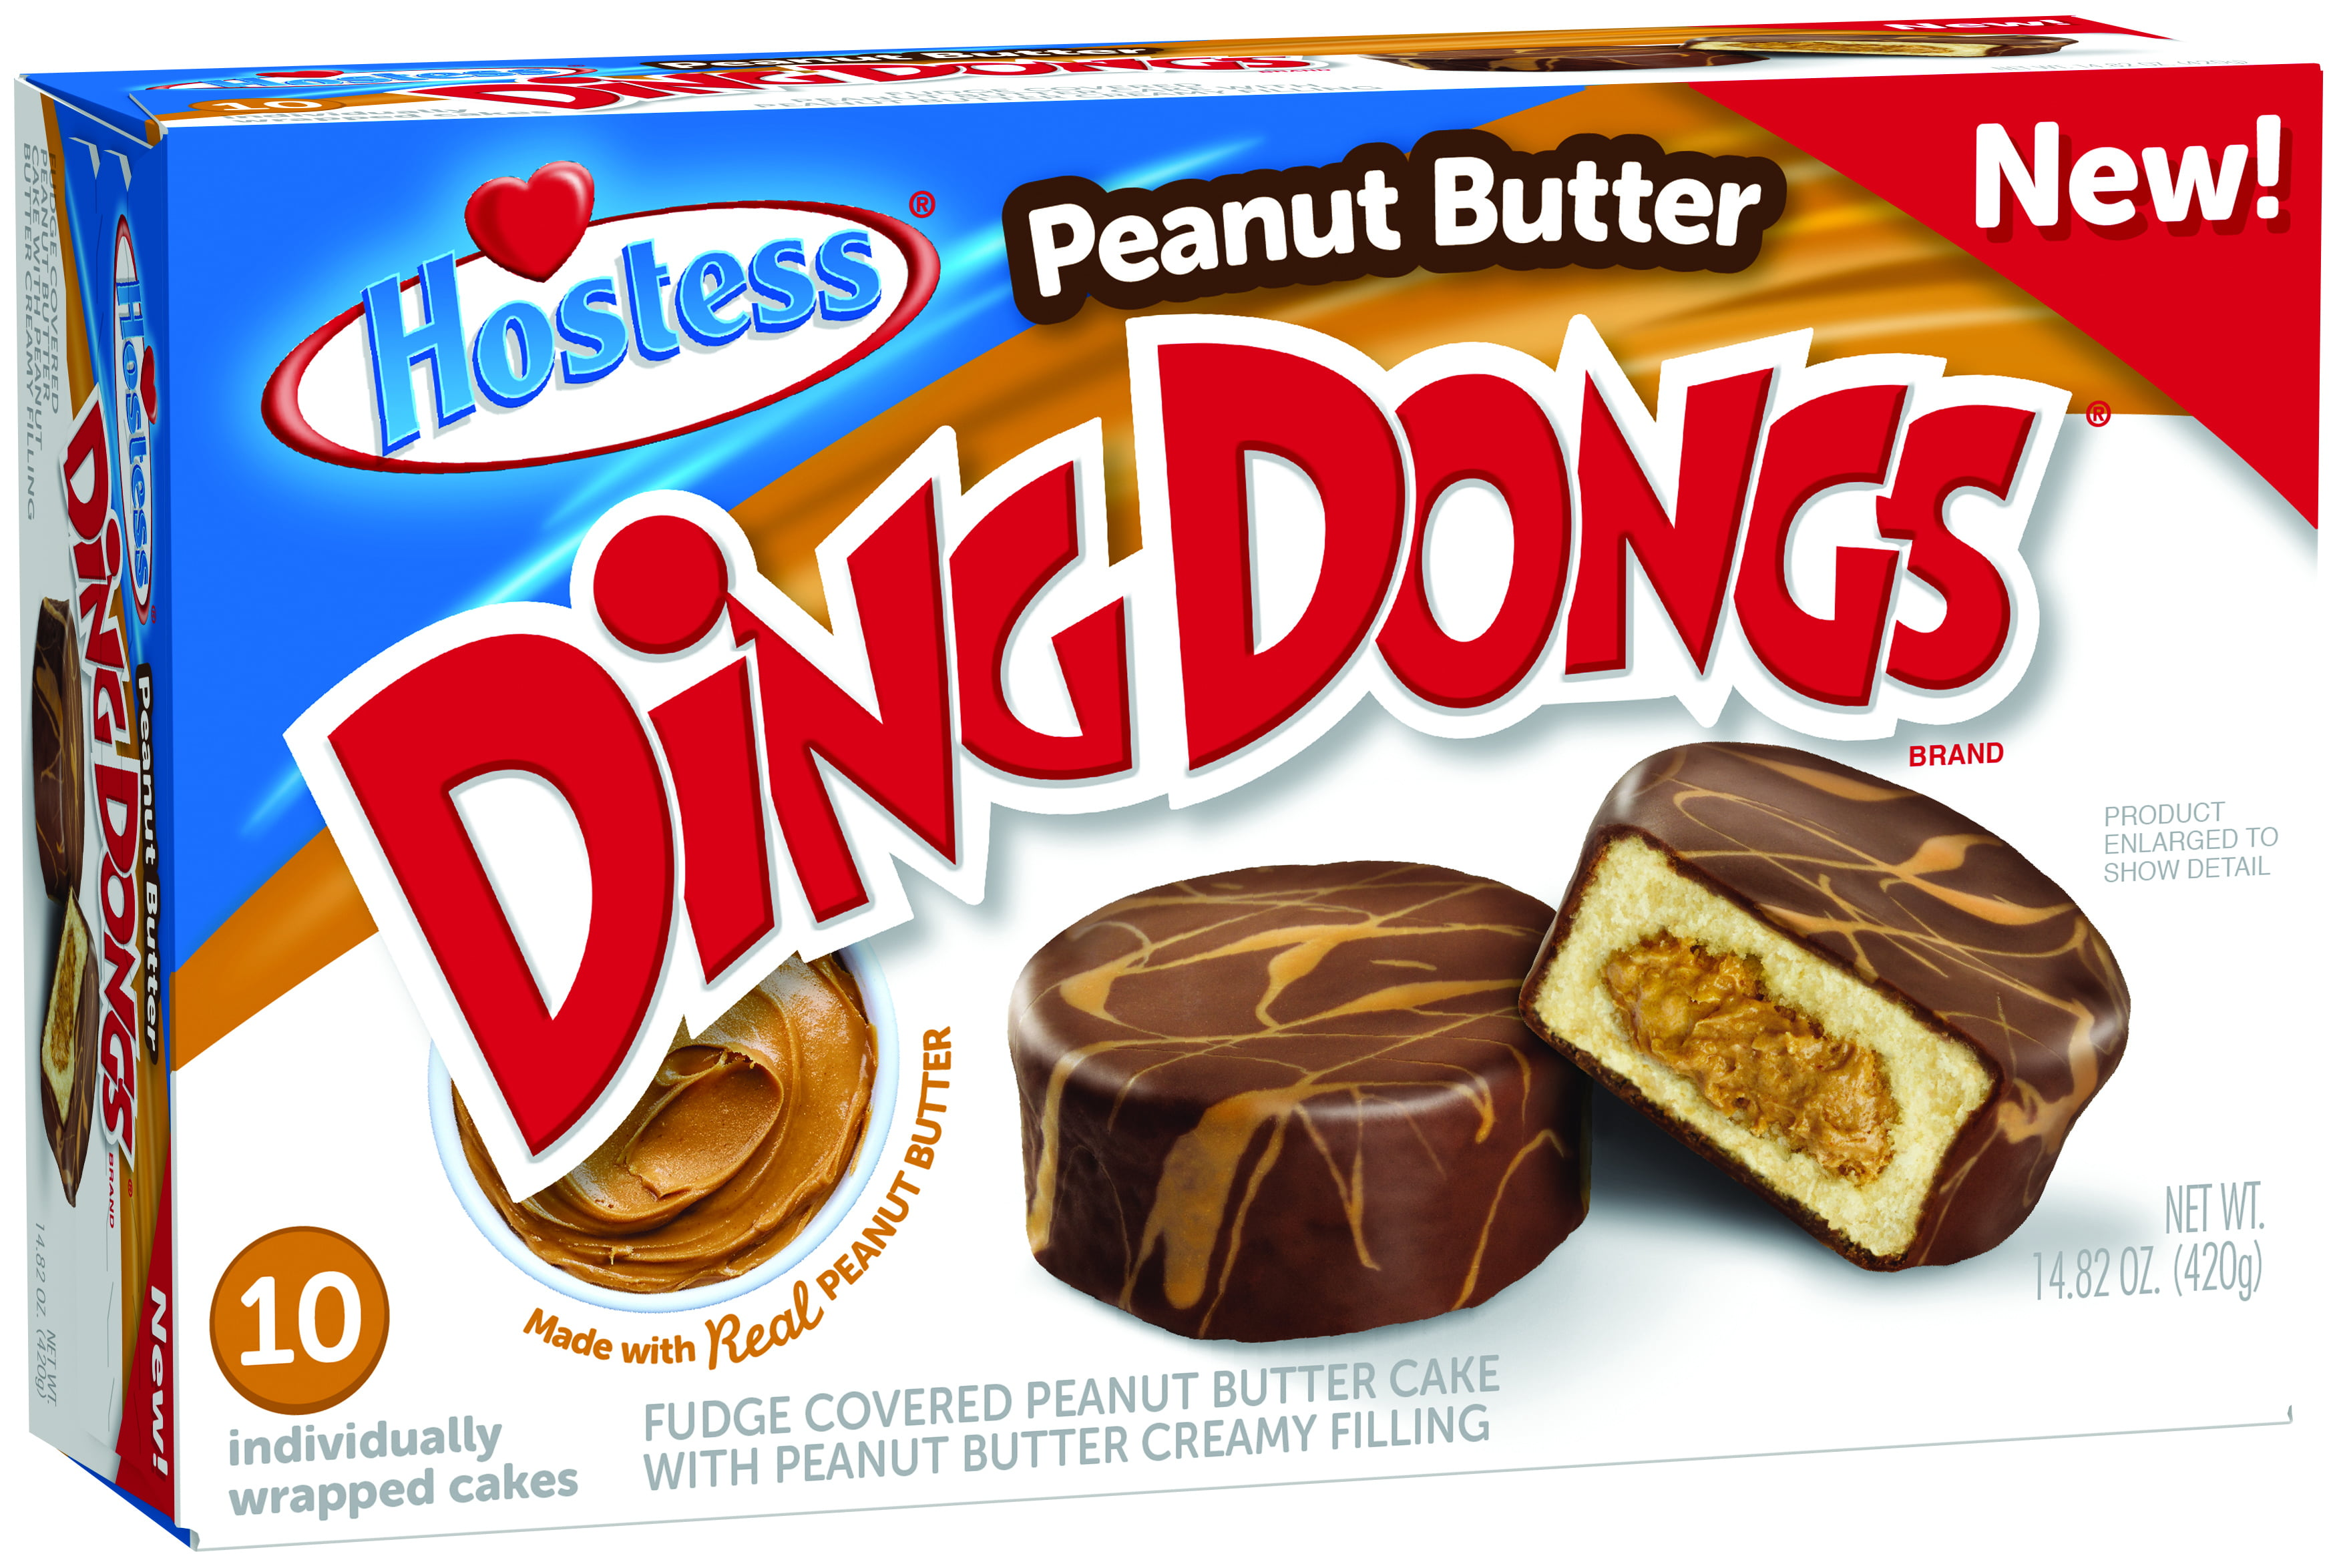 Hostess Peanut Butter Ding Dong 14.82oz, 10ct Box ...